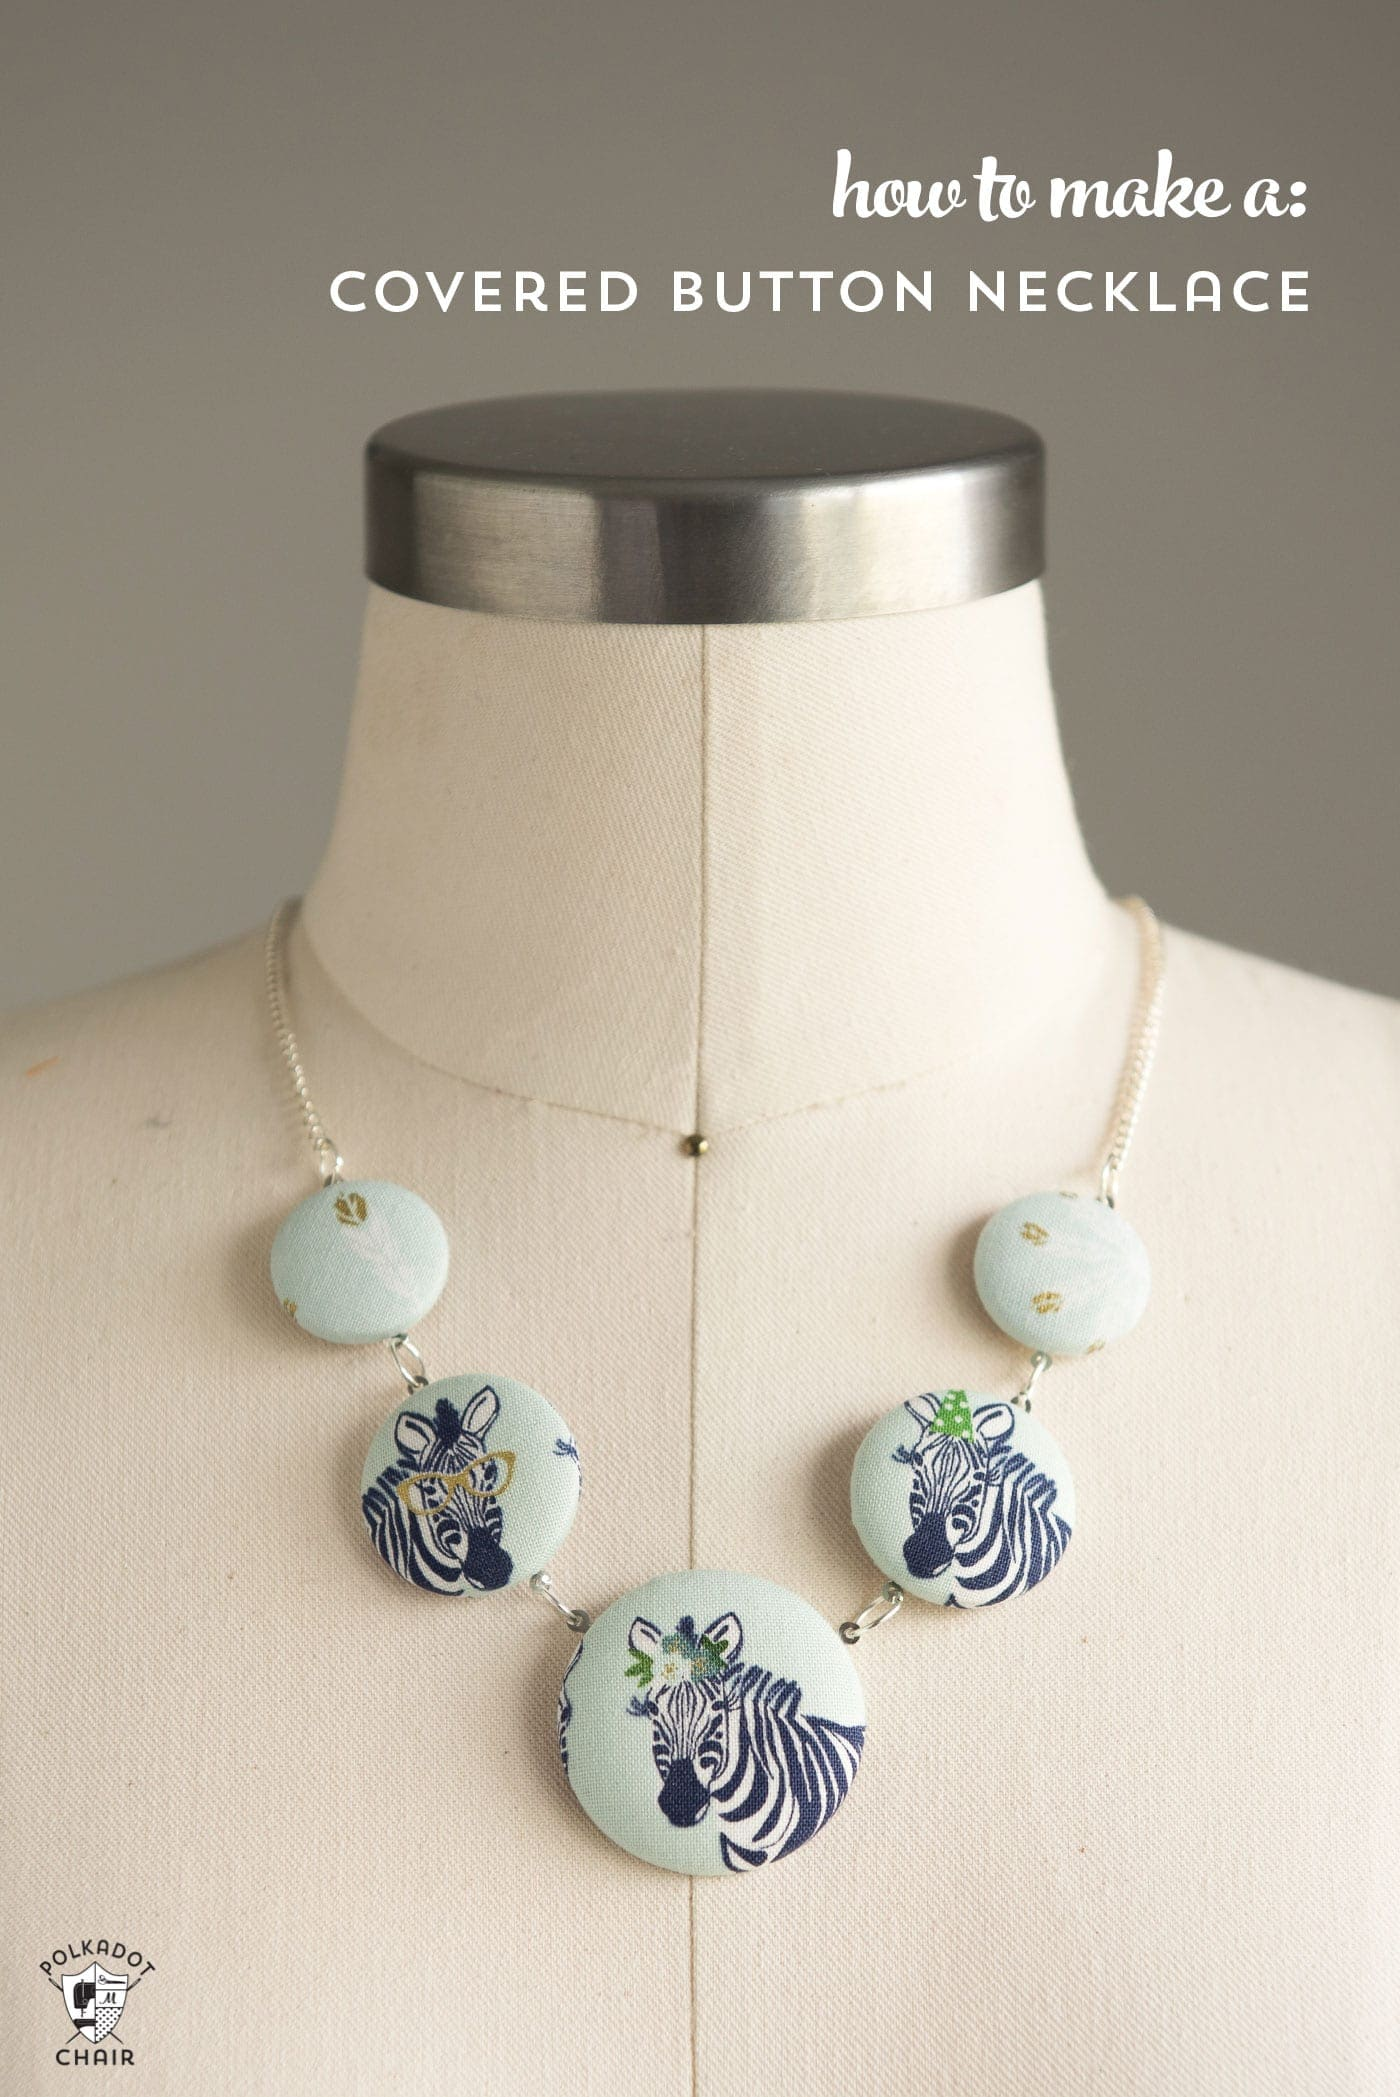 Fabric Covered Button Necklace Tutorial The Polka Dot Chair